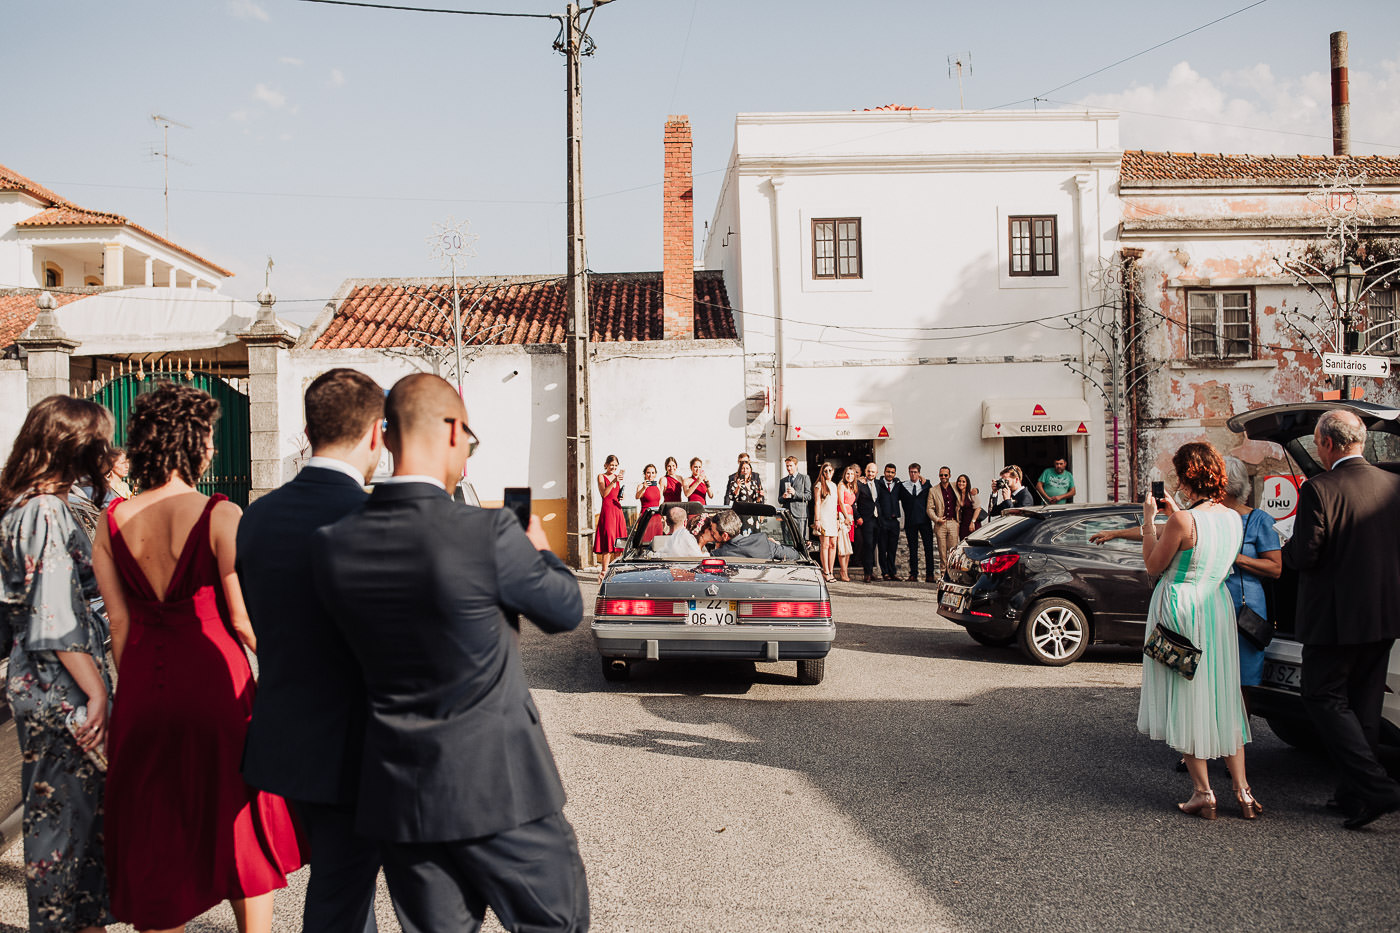 bride-groom_solar-de-pancas_religious-ceremony_lisboa_lisbon_documentary-wedding-photography_